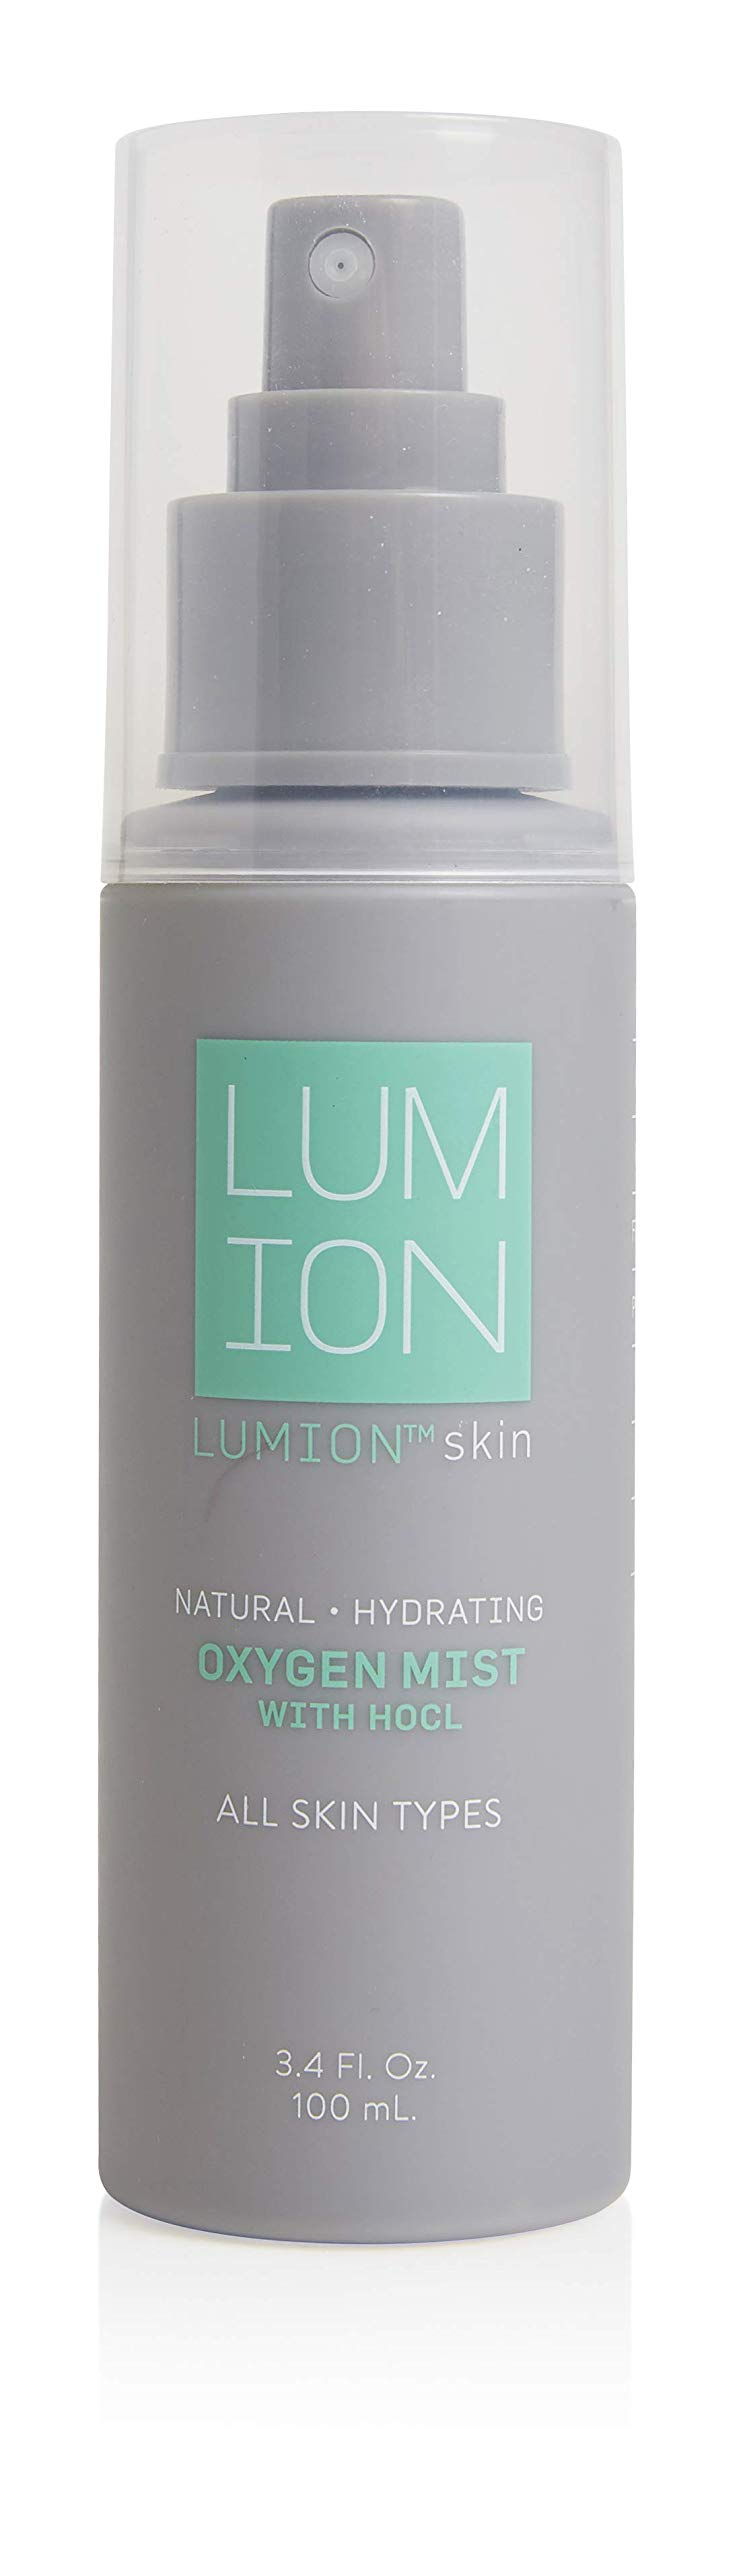 LUMIONskin Oxygen Mist with HOCL, Cleansing, Hydrating, Non-Irritating Every Day Mist, Ideal for Blemish Prone Skin, Vegan and Cruelty Free, 3.4 fl oz. by LUMION skin